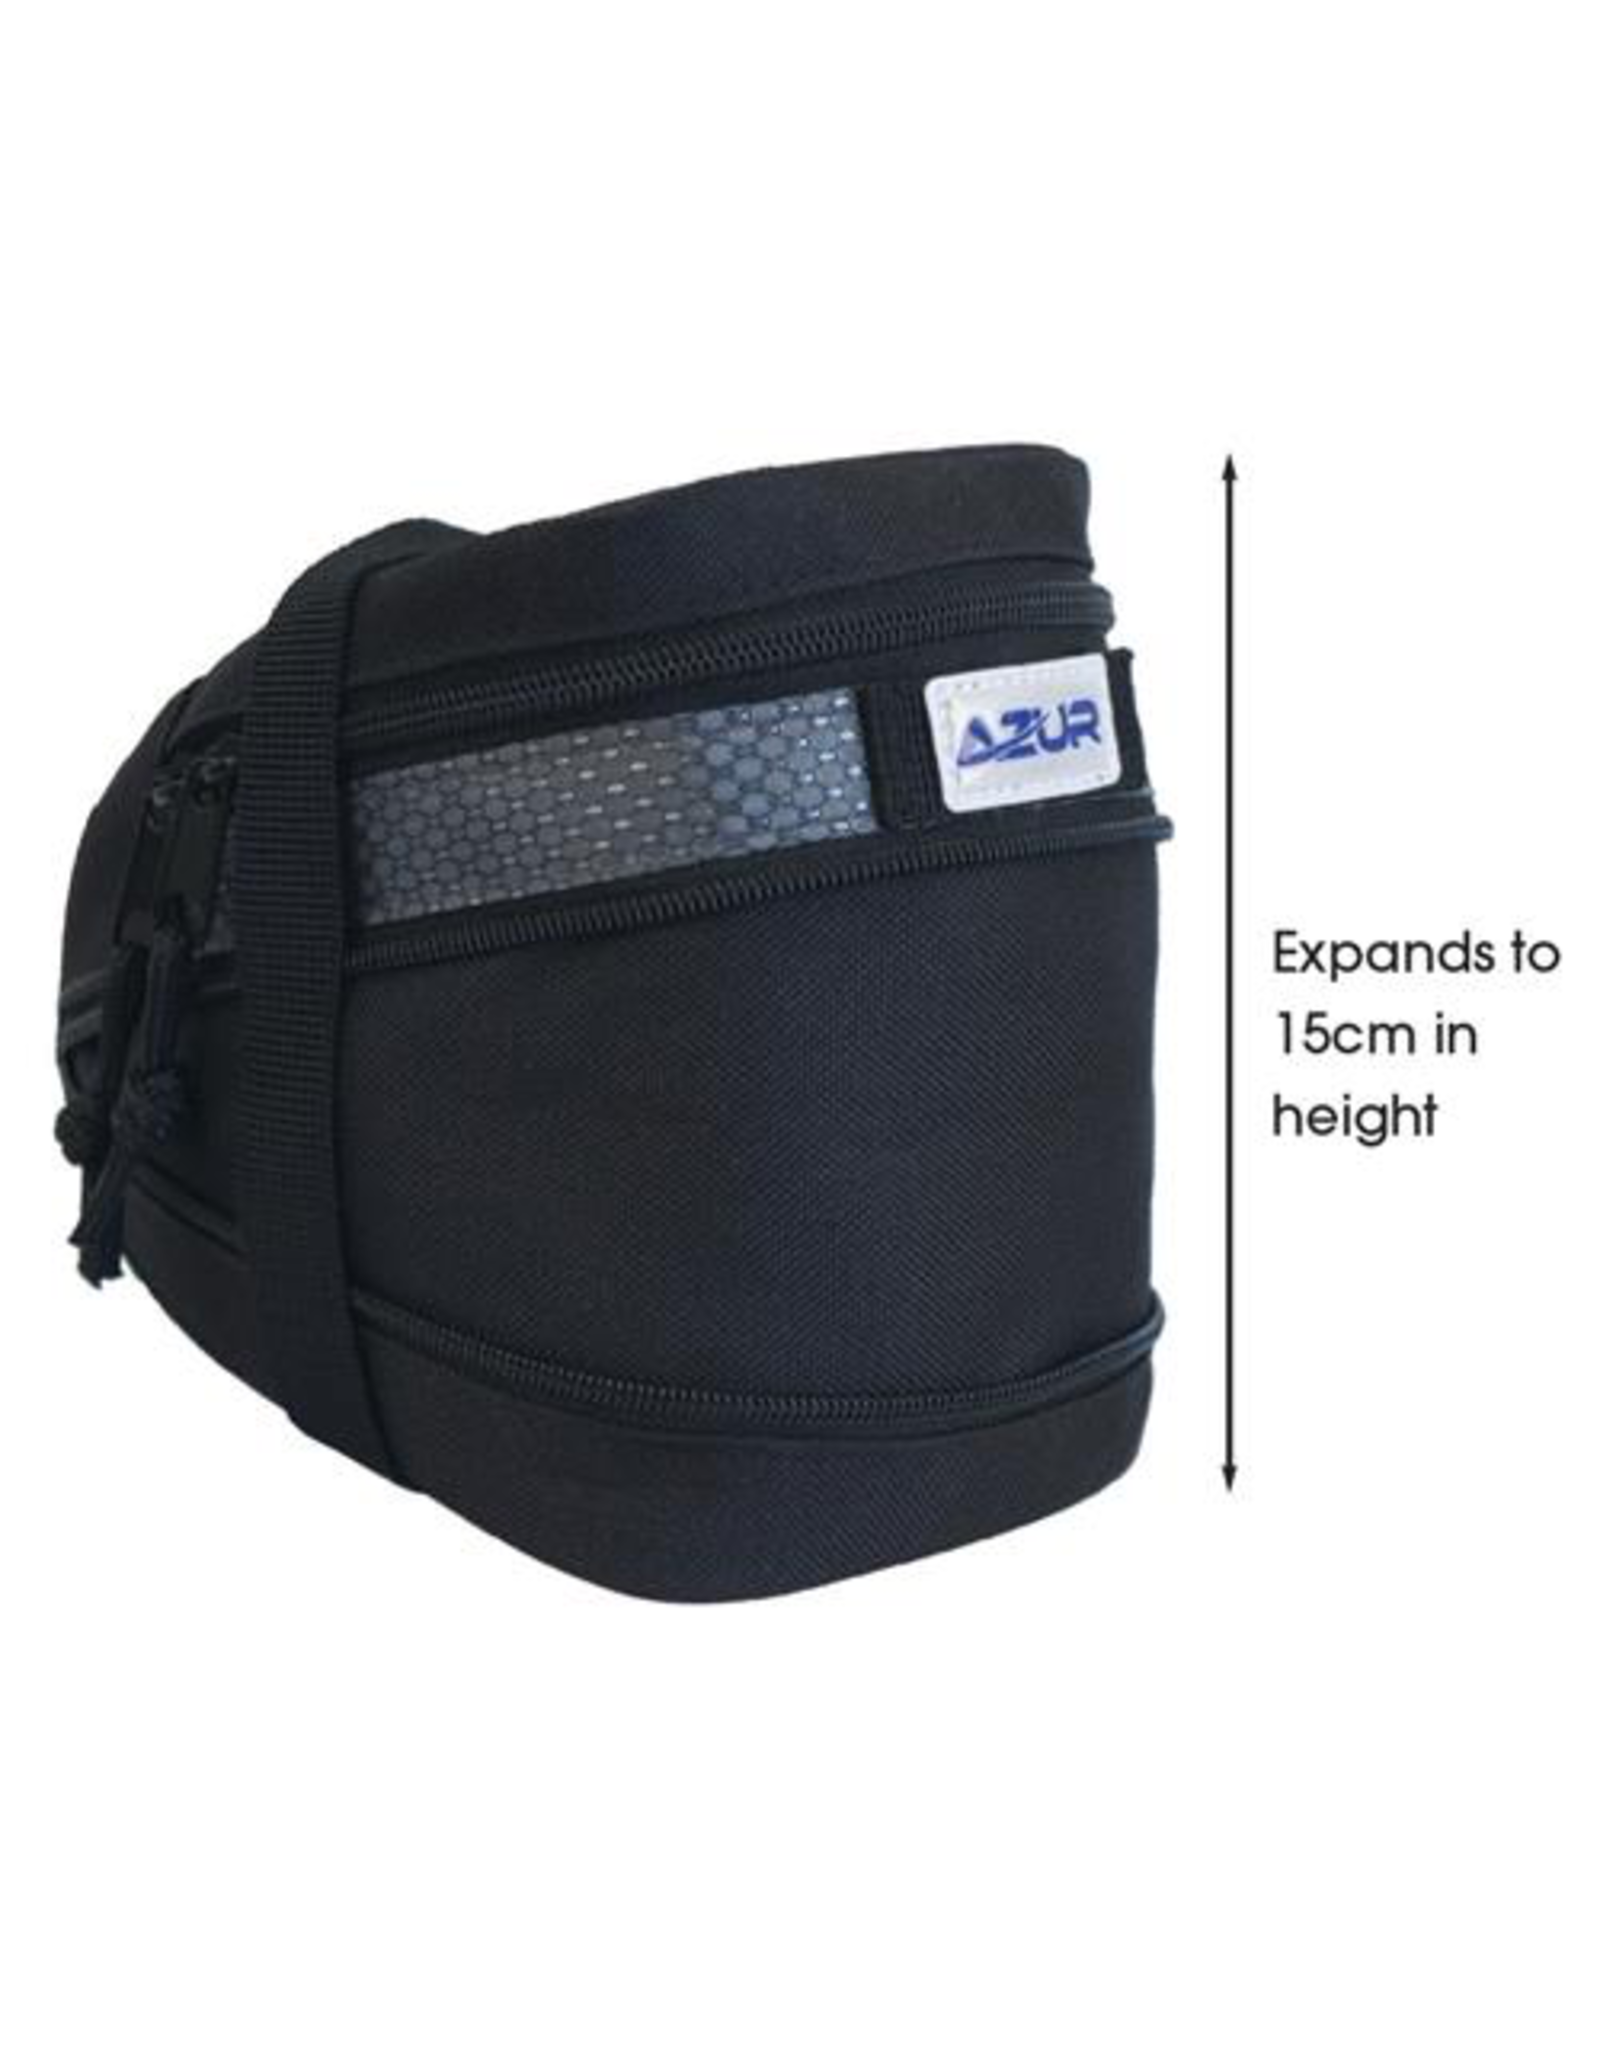 AZUR SADDLE BAG AZUR SHUTTLE BAG MEDIUM EXPANDING